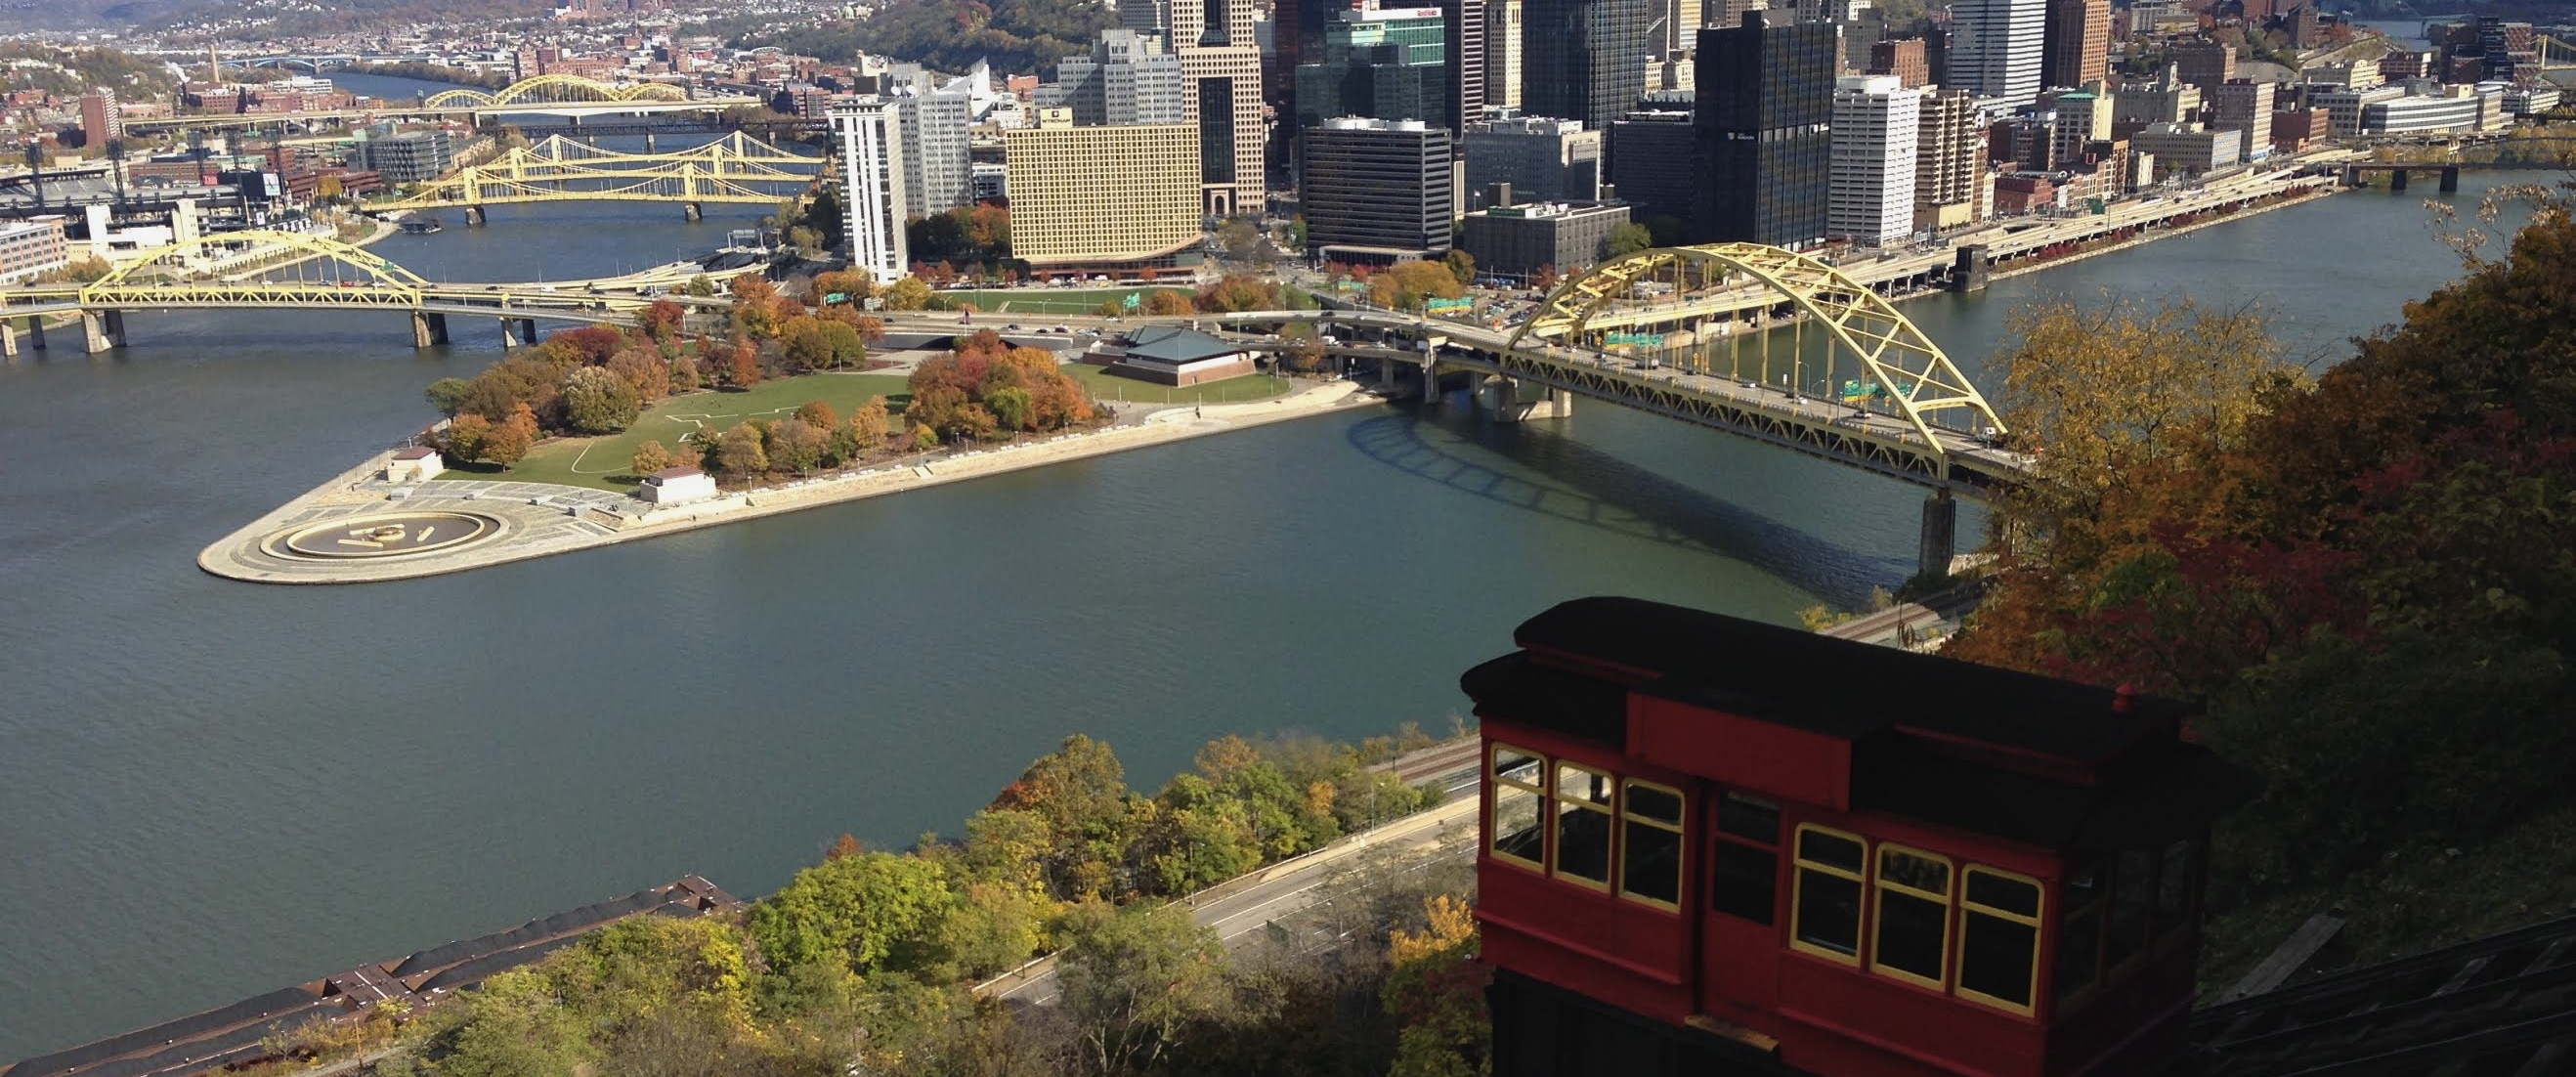 Pittsburgh's Duquesne Incline